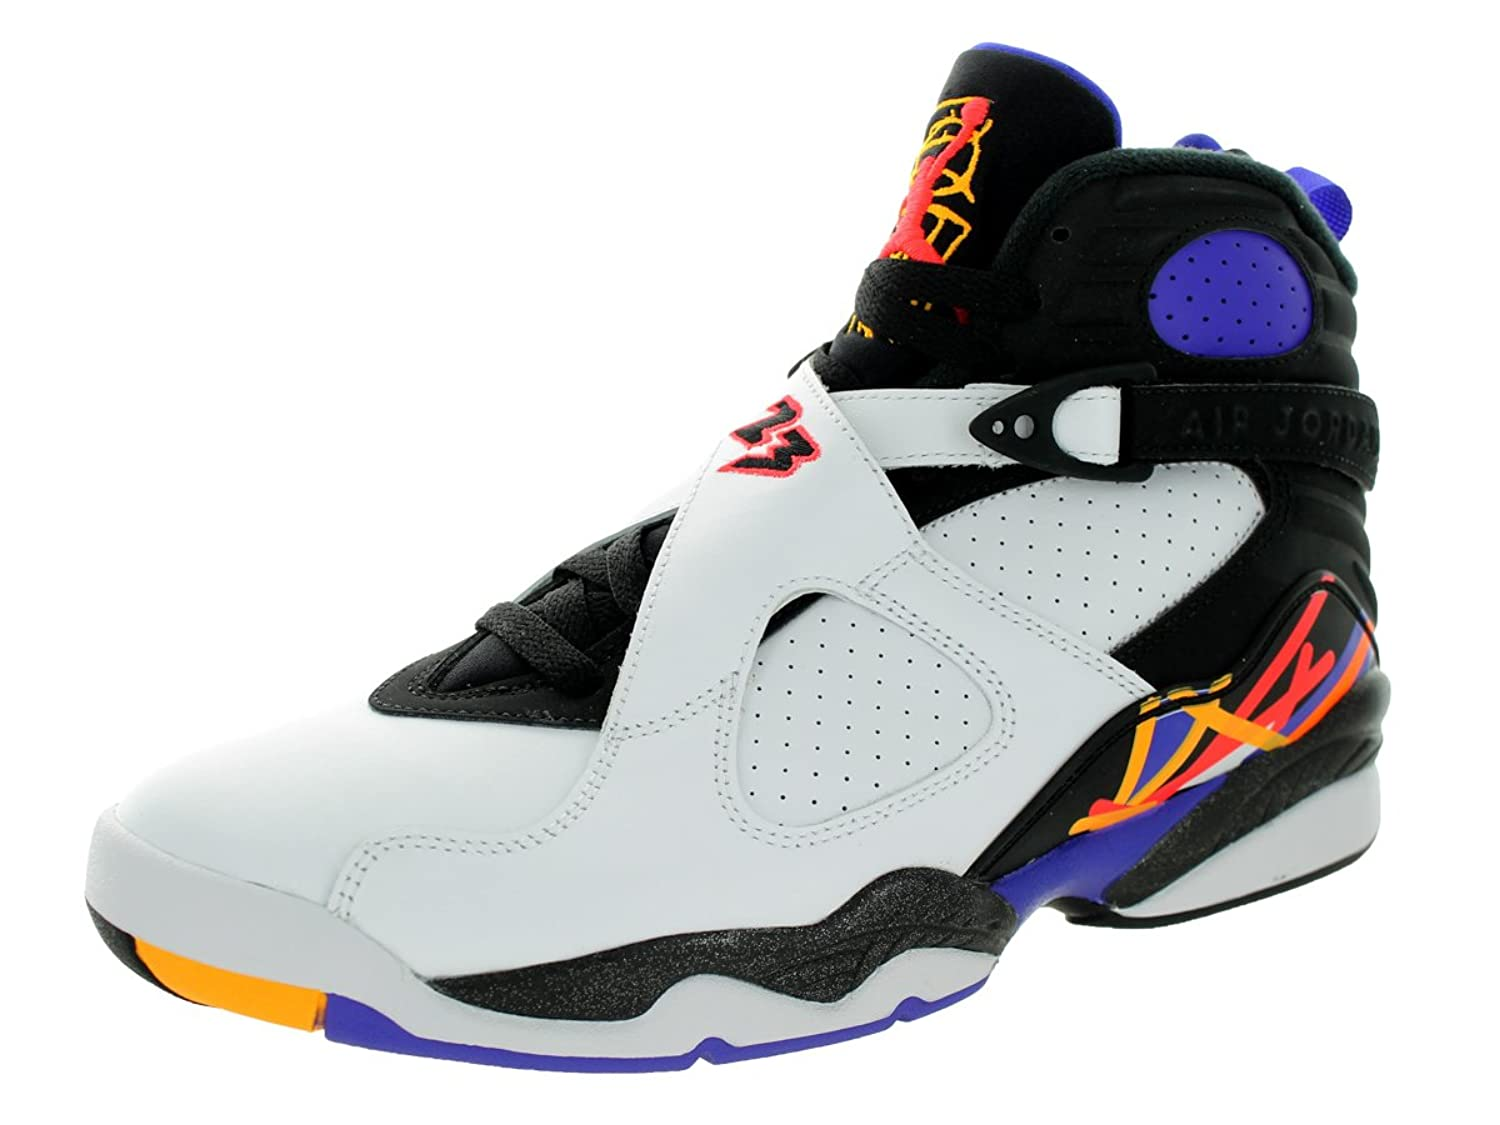 Nike Air Jordan Retro 8 sneakers clearance release dates extremely cheap online sale high quality ca6gF